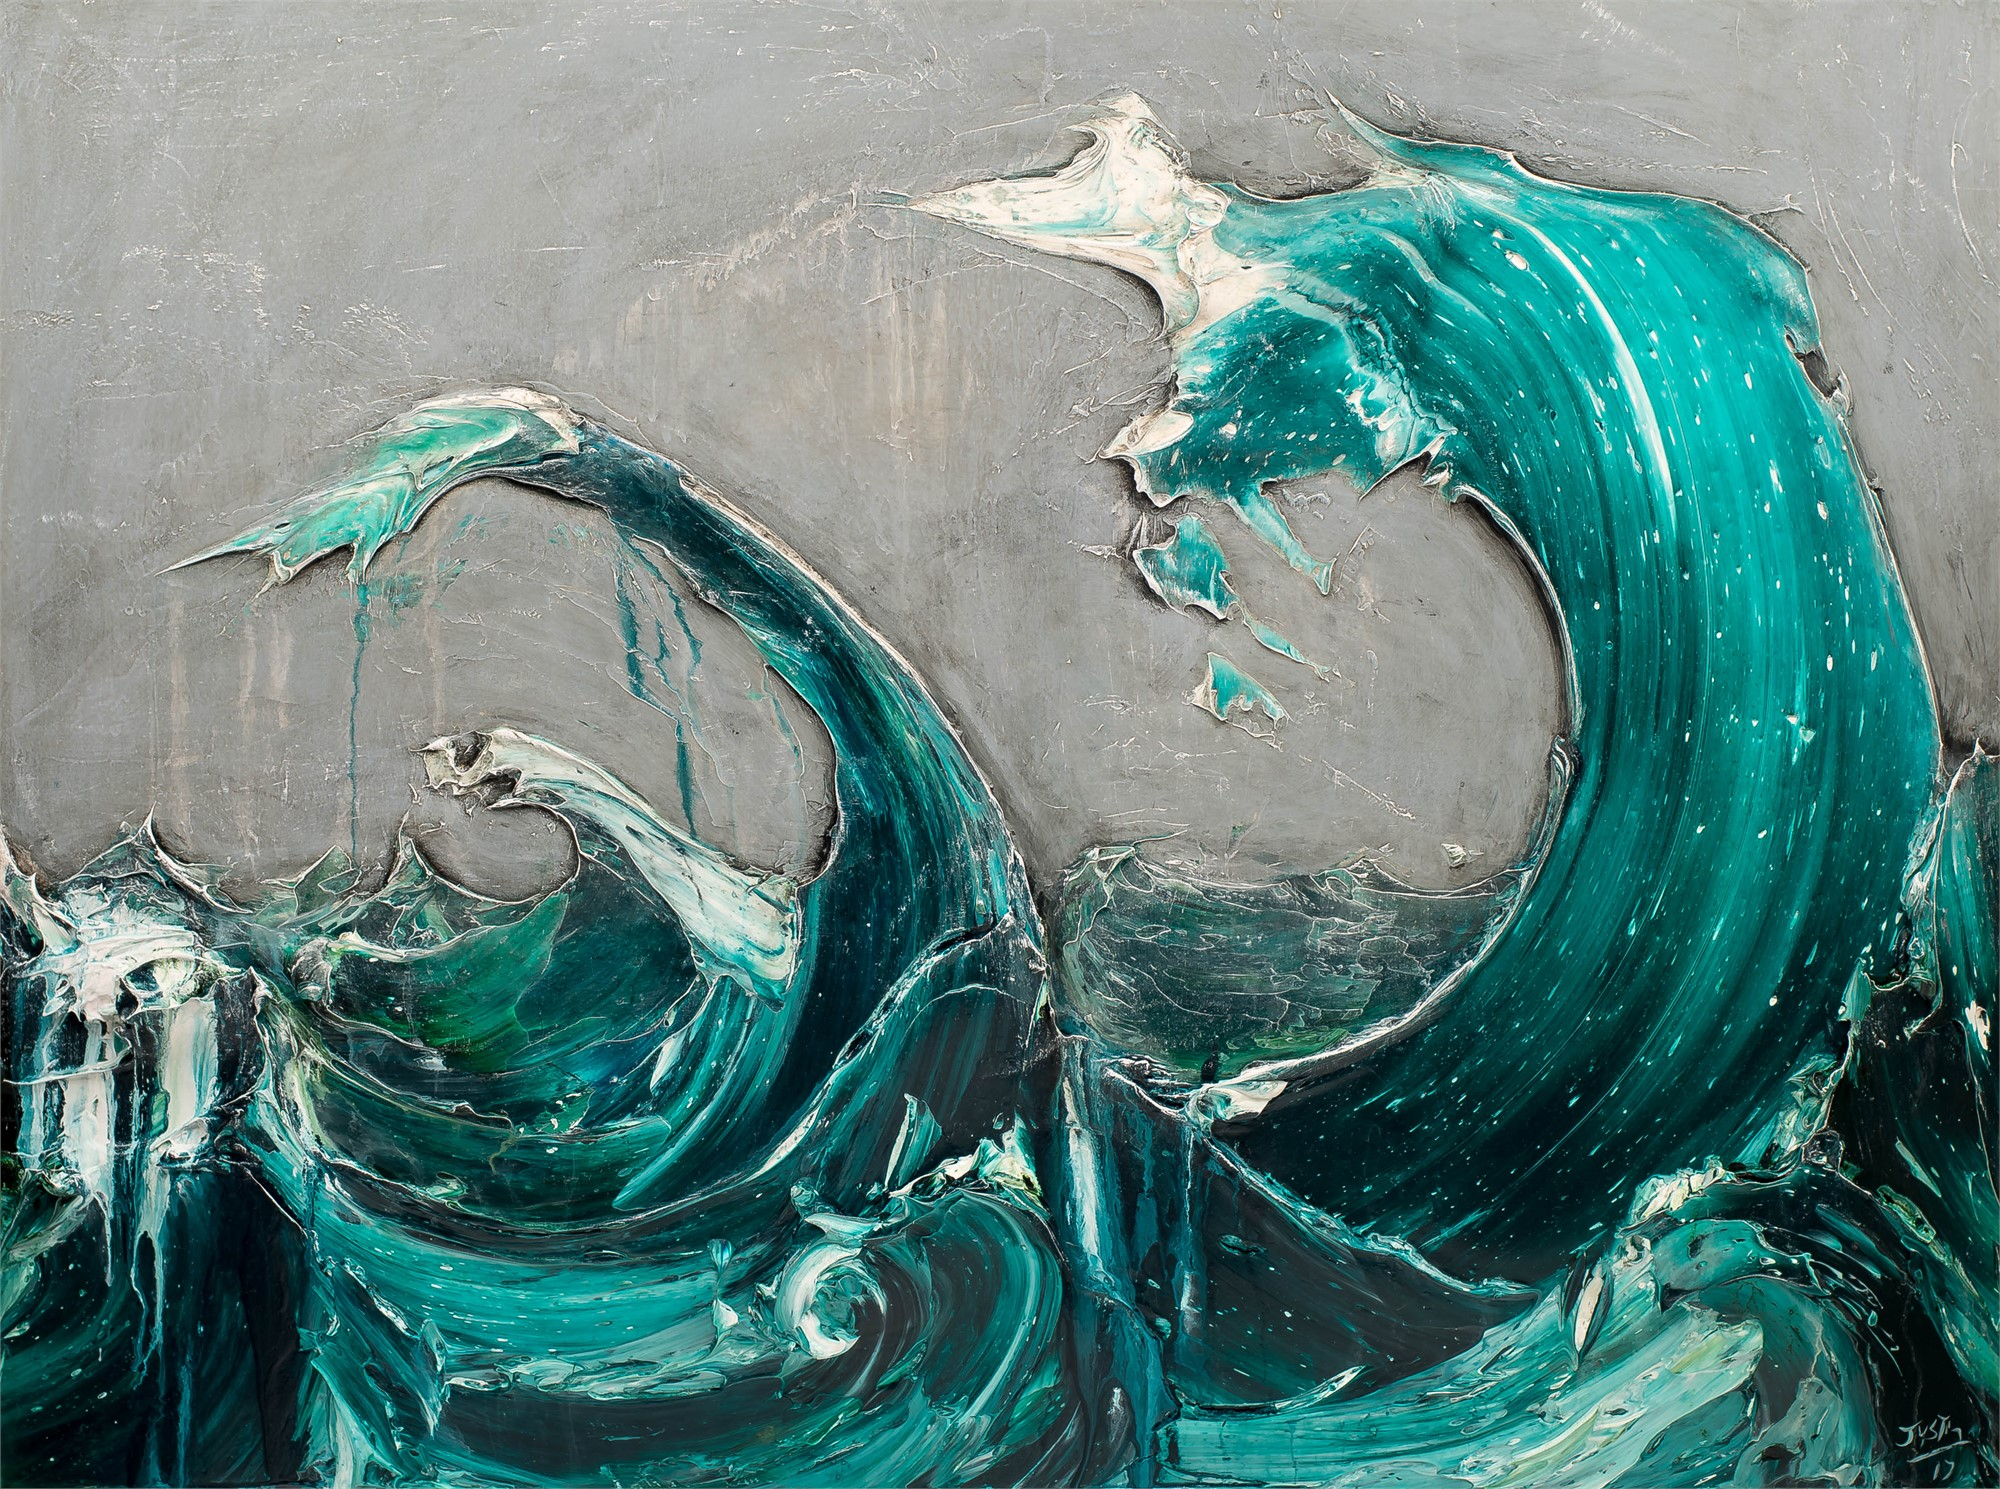 Waves by JUSTIN GAFFREY